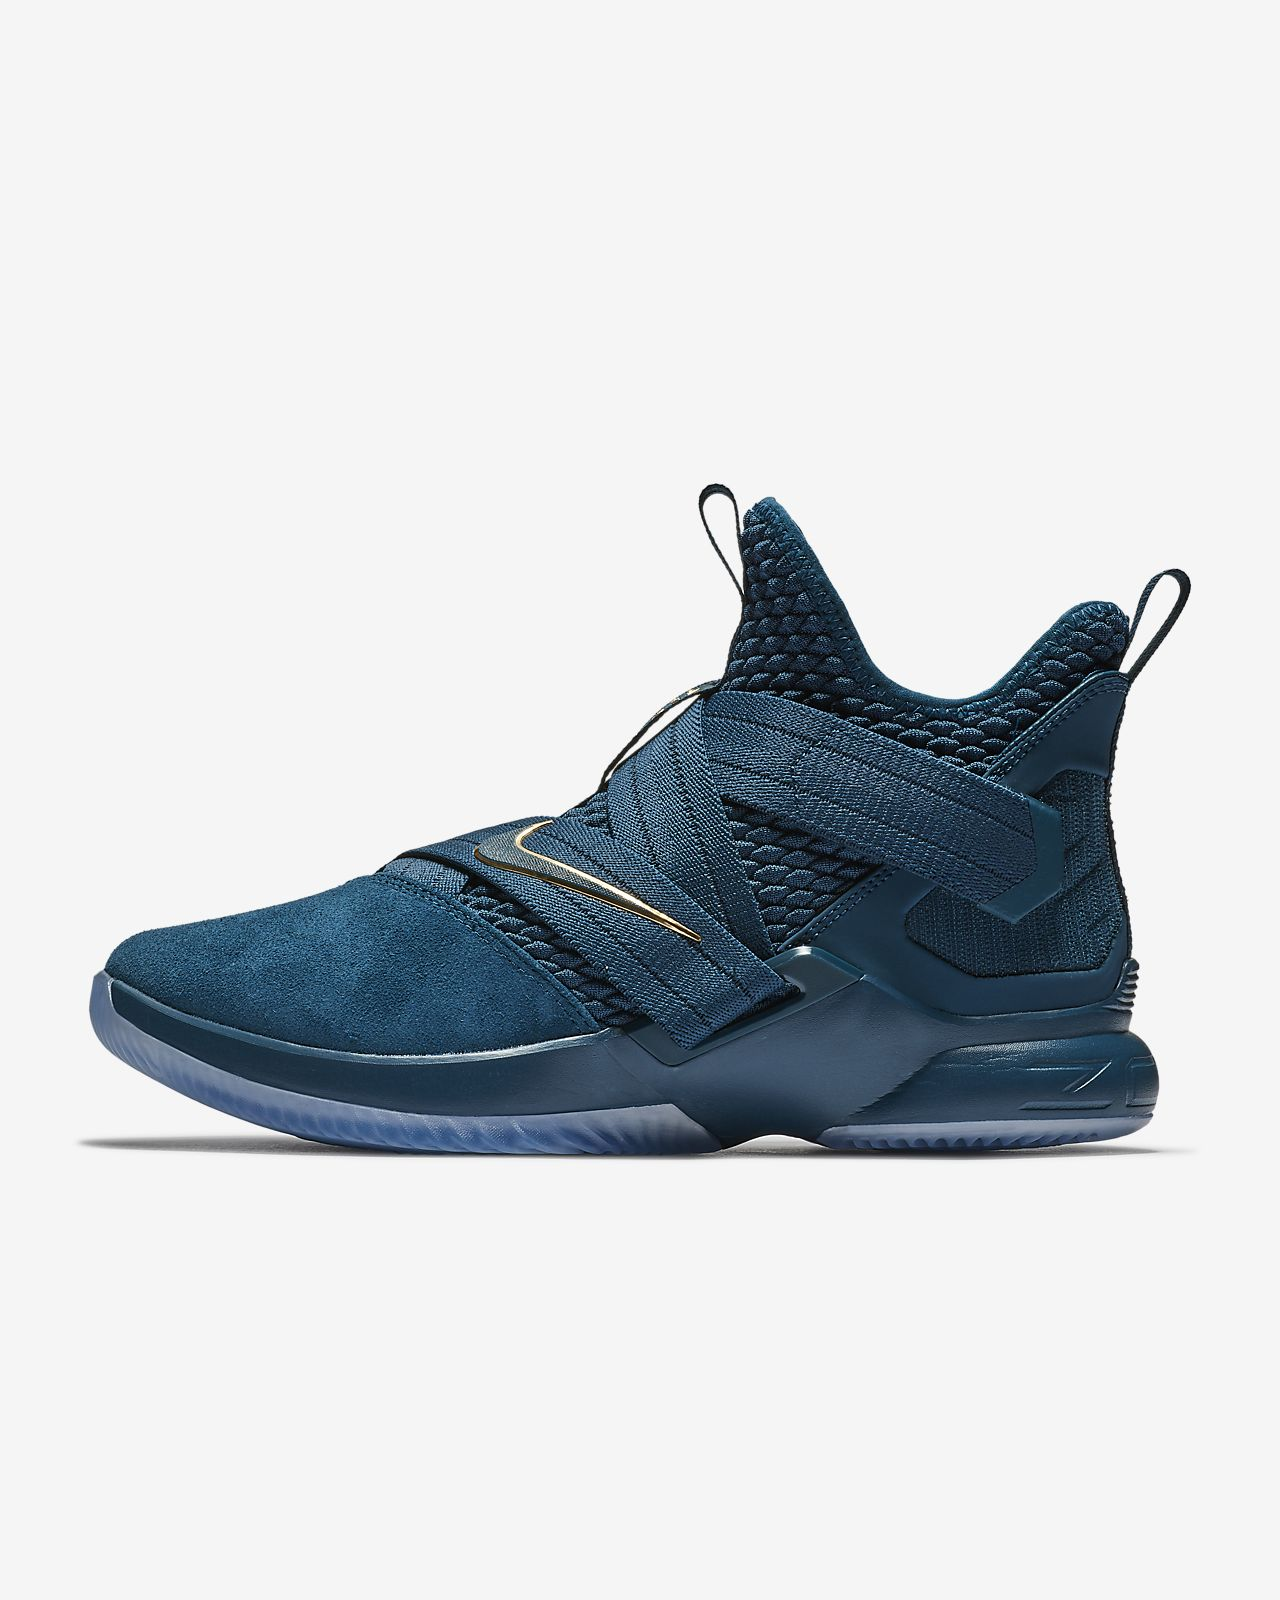 ... LeBron Soldier XII SFG Basketball Shoe